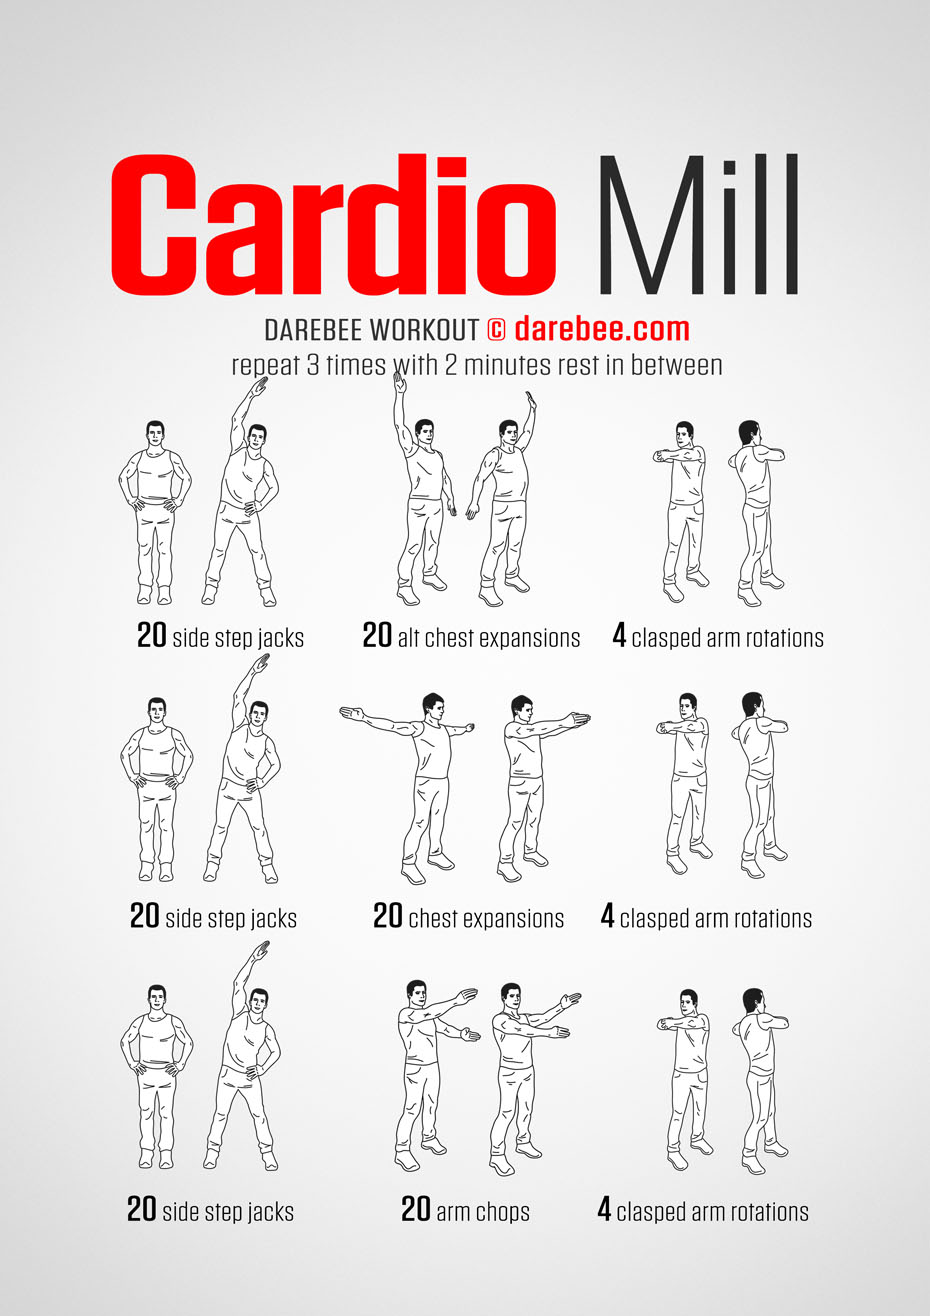 Cardio Mill Workout